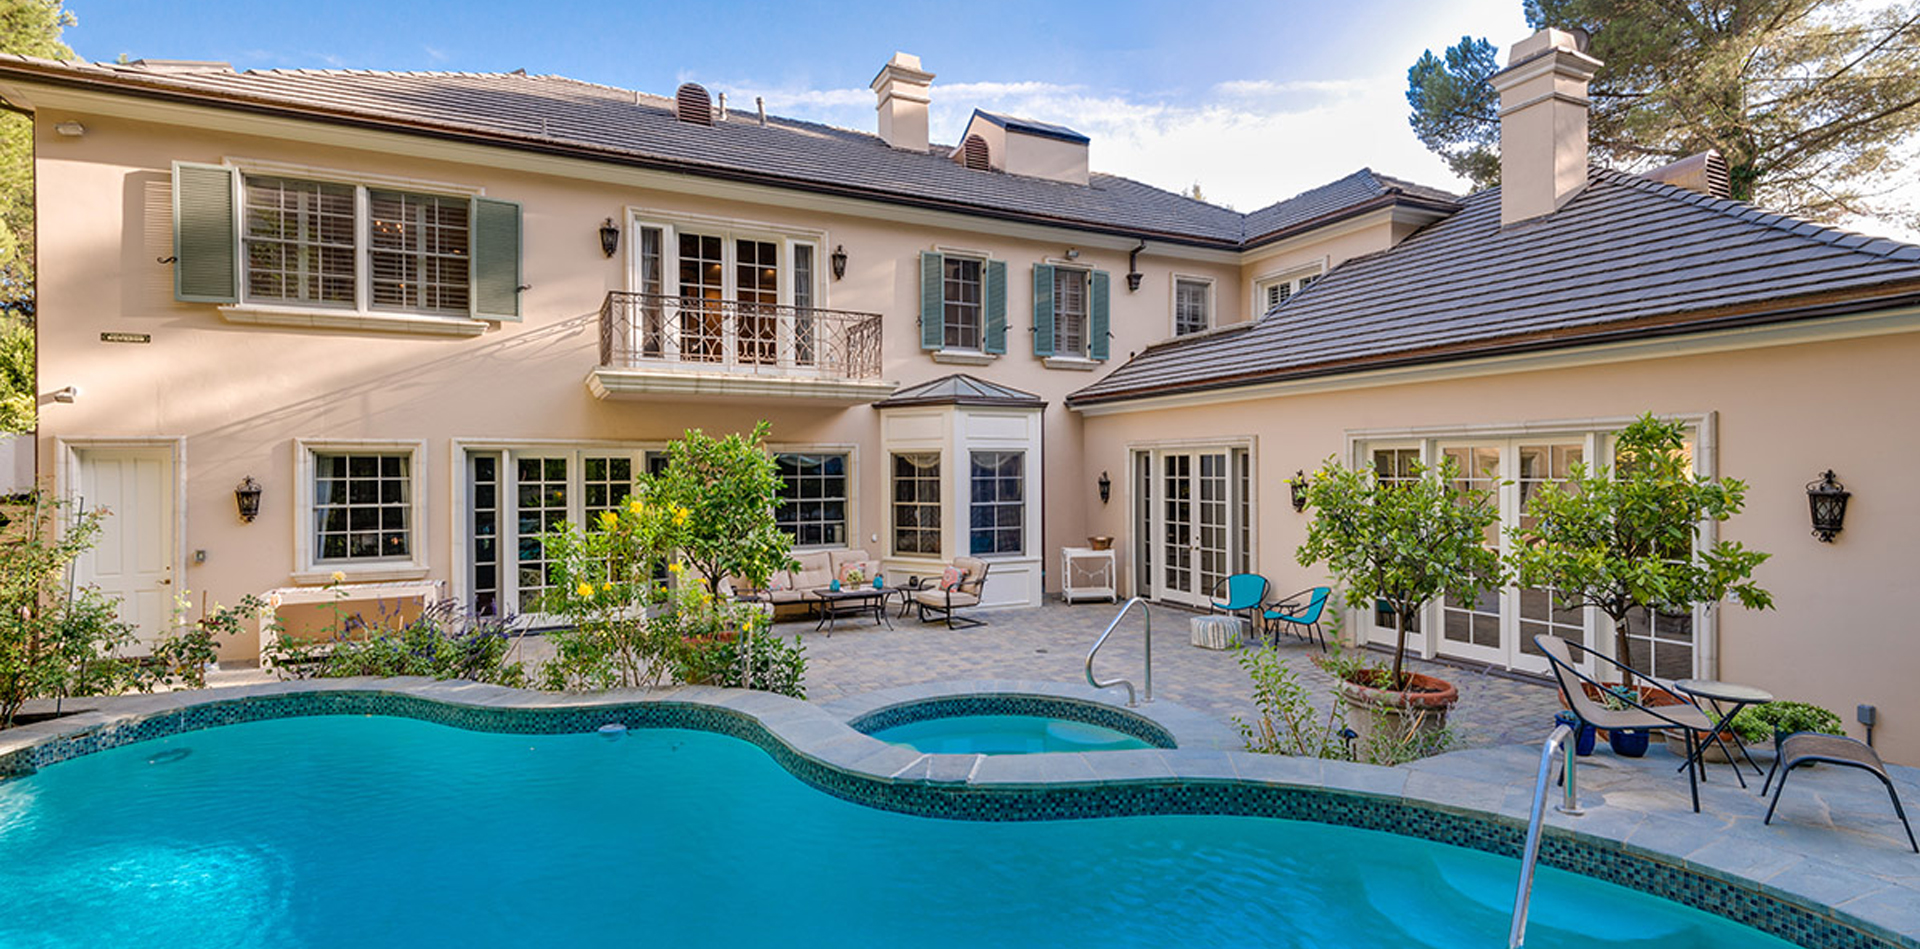 9577 Lime Orchard Road - $11,500,000